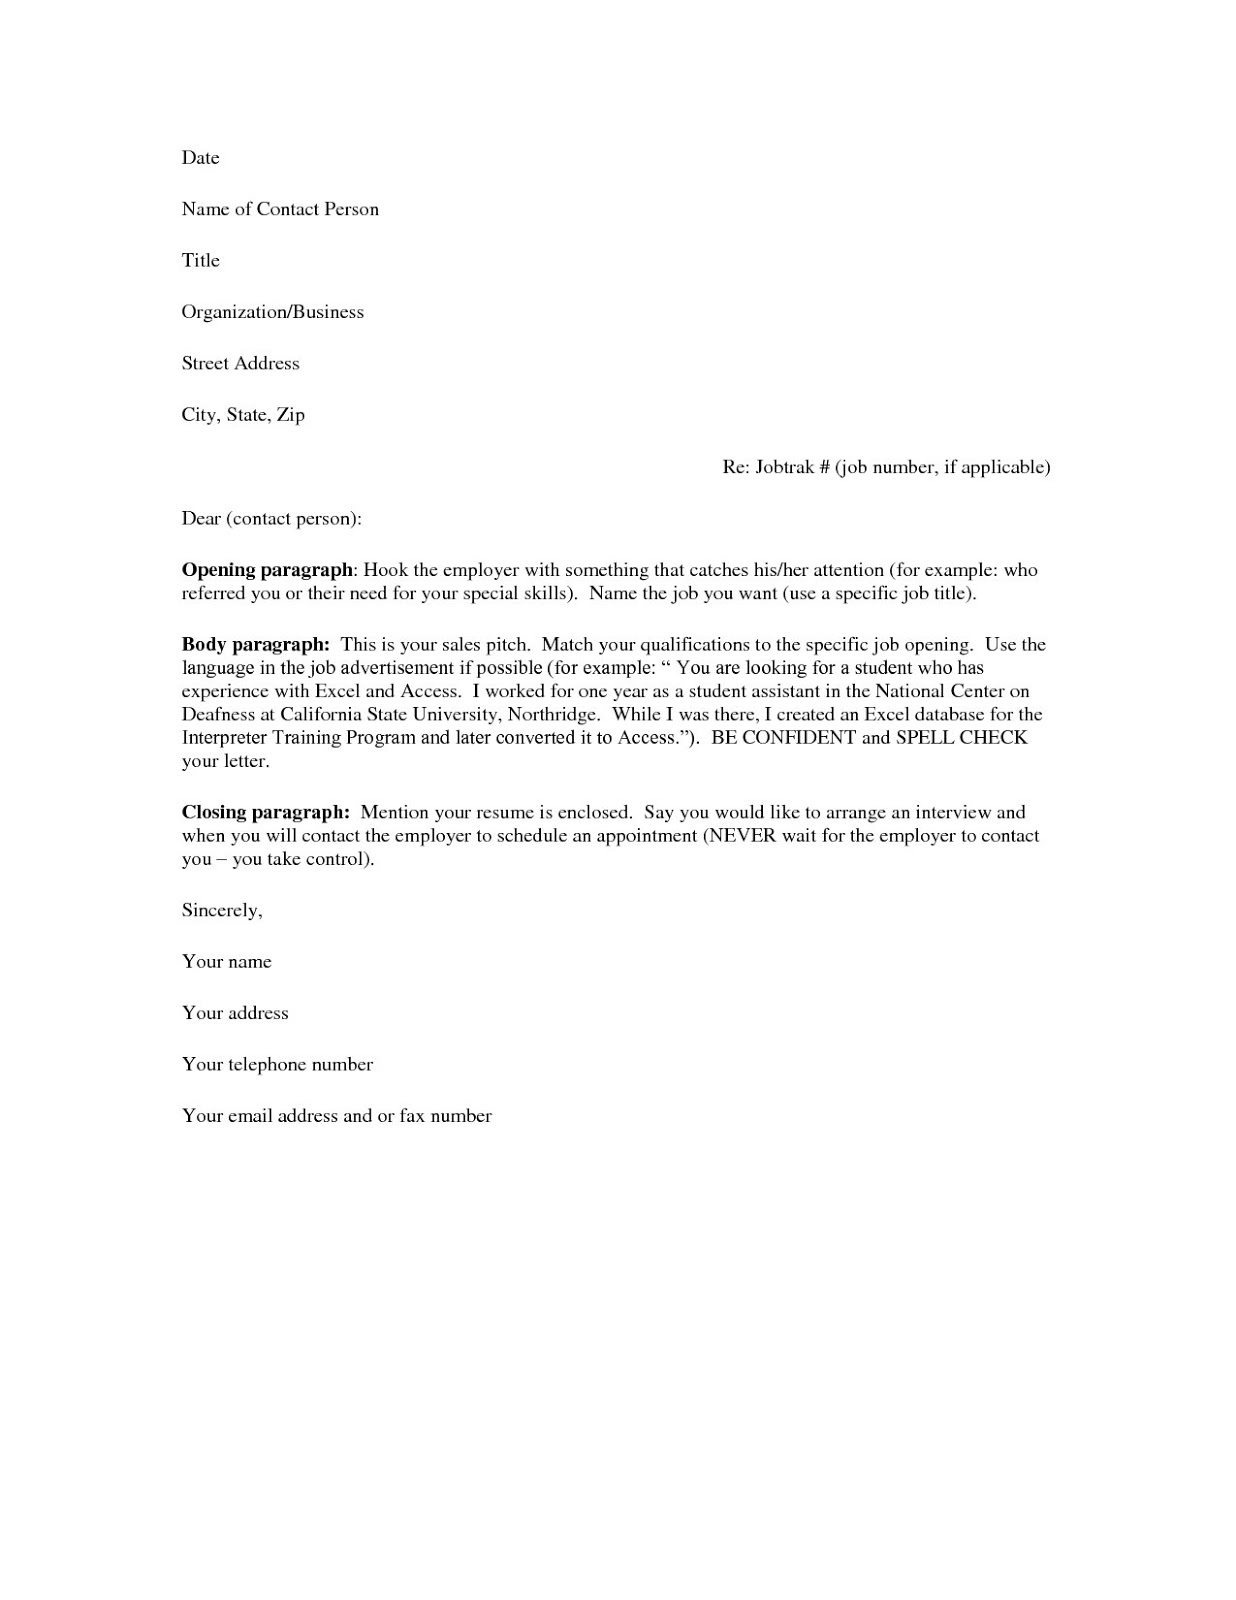 Cover Letter Heading Same As Resume Application Letter Sample Cover Letter  Sample Heading